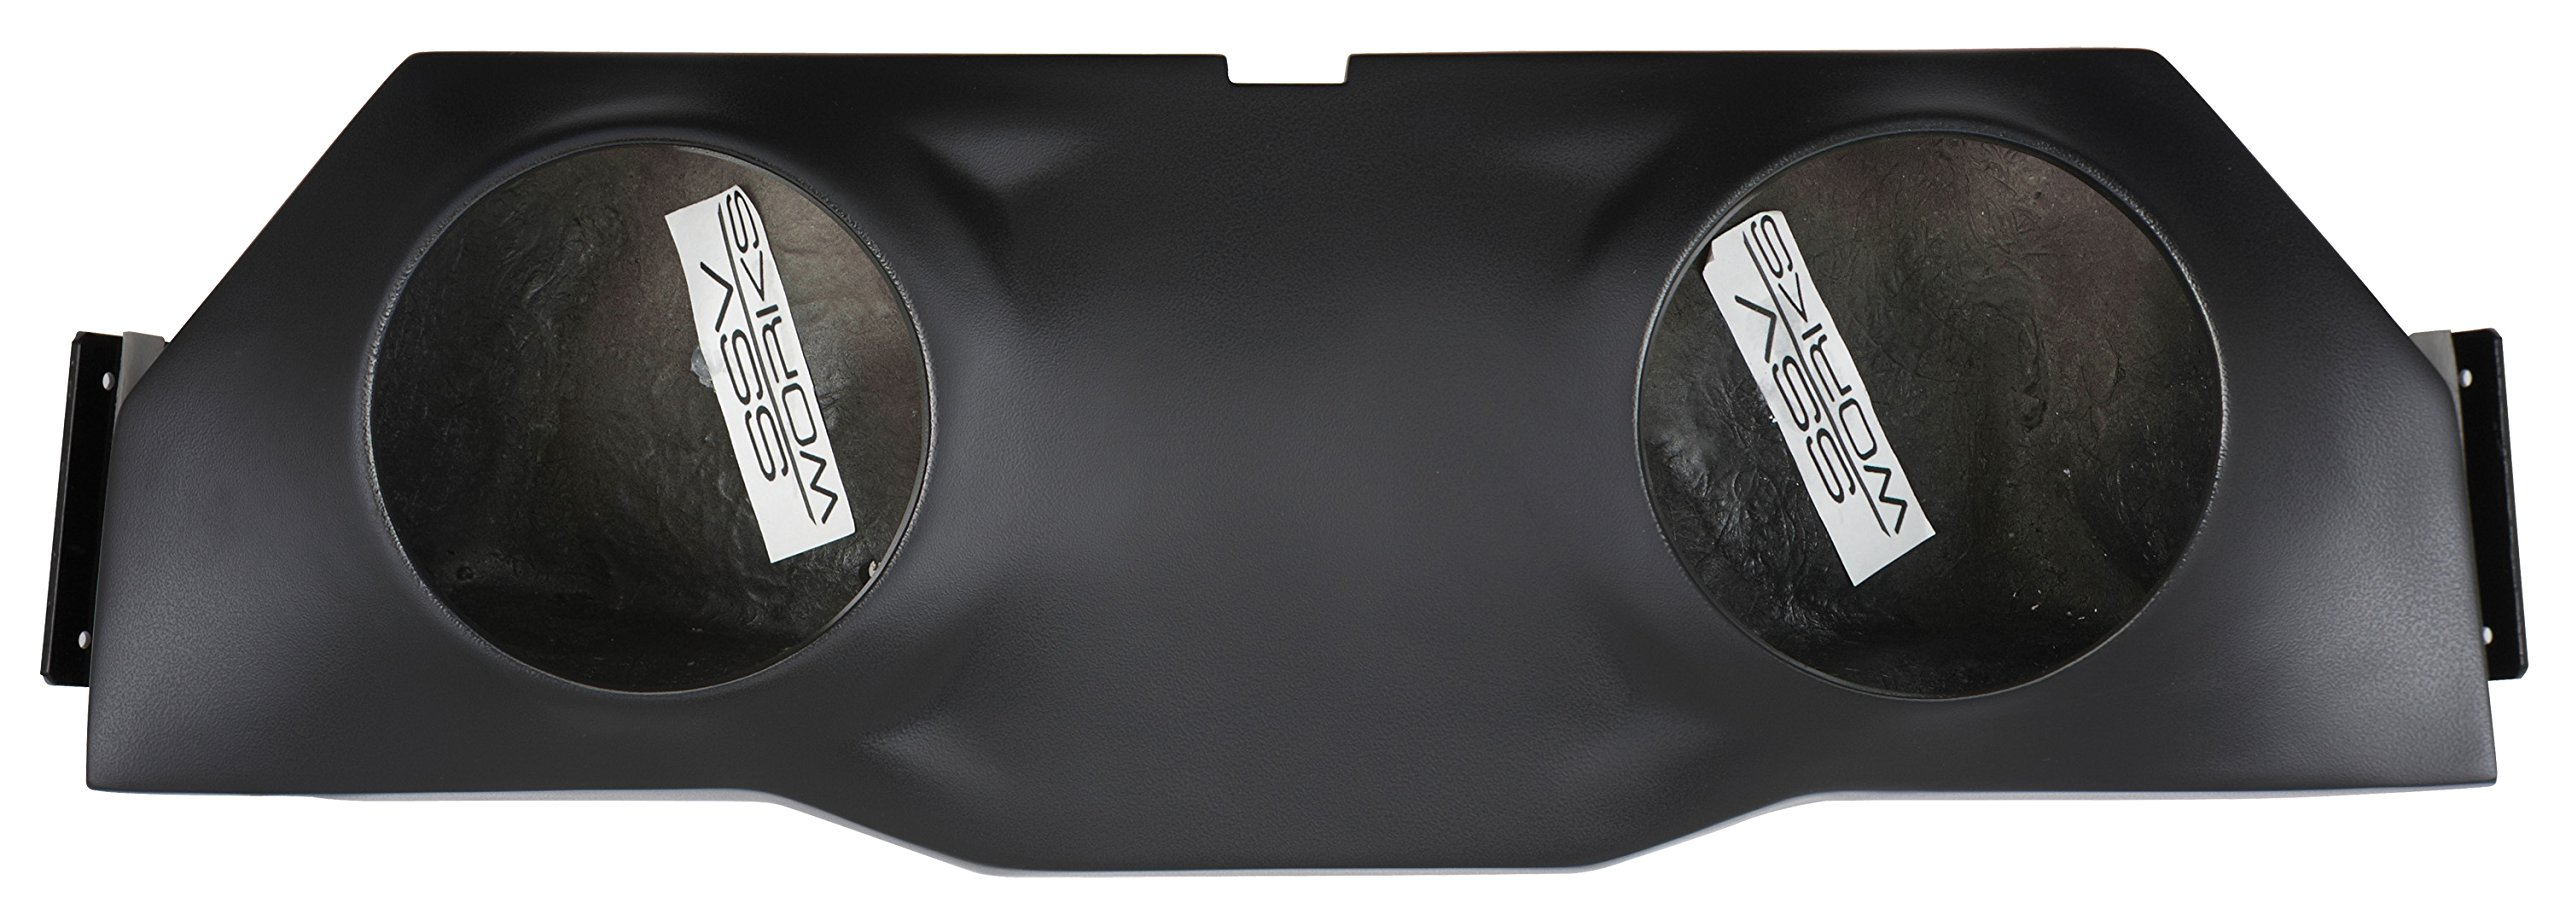 SSV Works Polaris RZR1K and 2015 RZR900 2 seat Overhead Stereo Speaker Pod fits 6 1/2'' Speakers